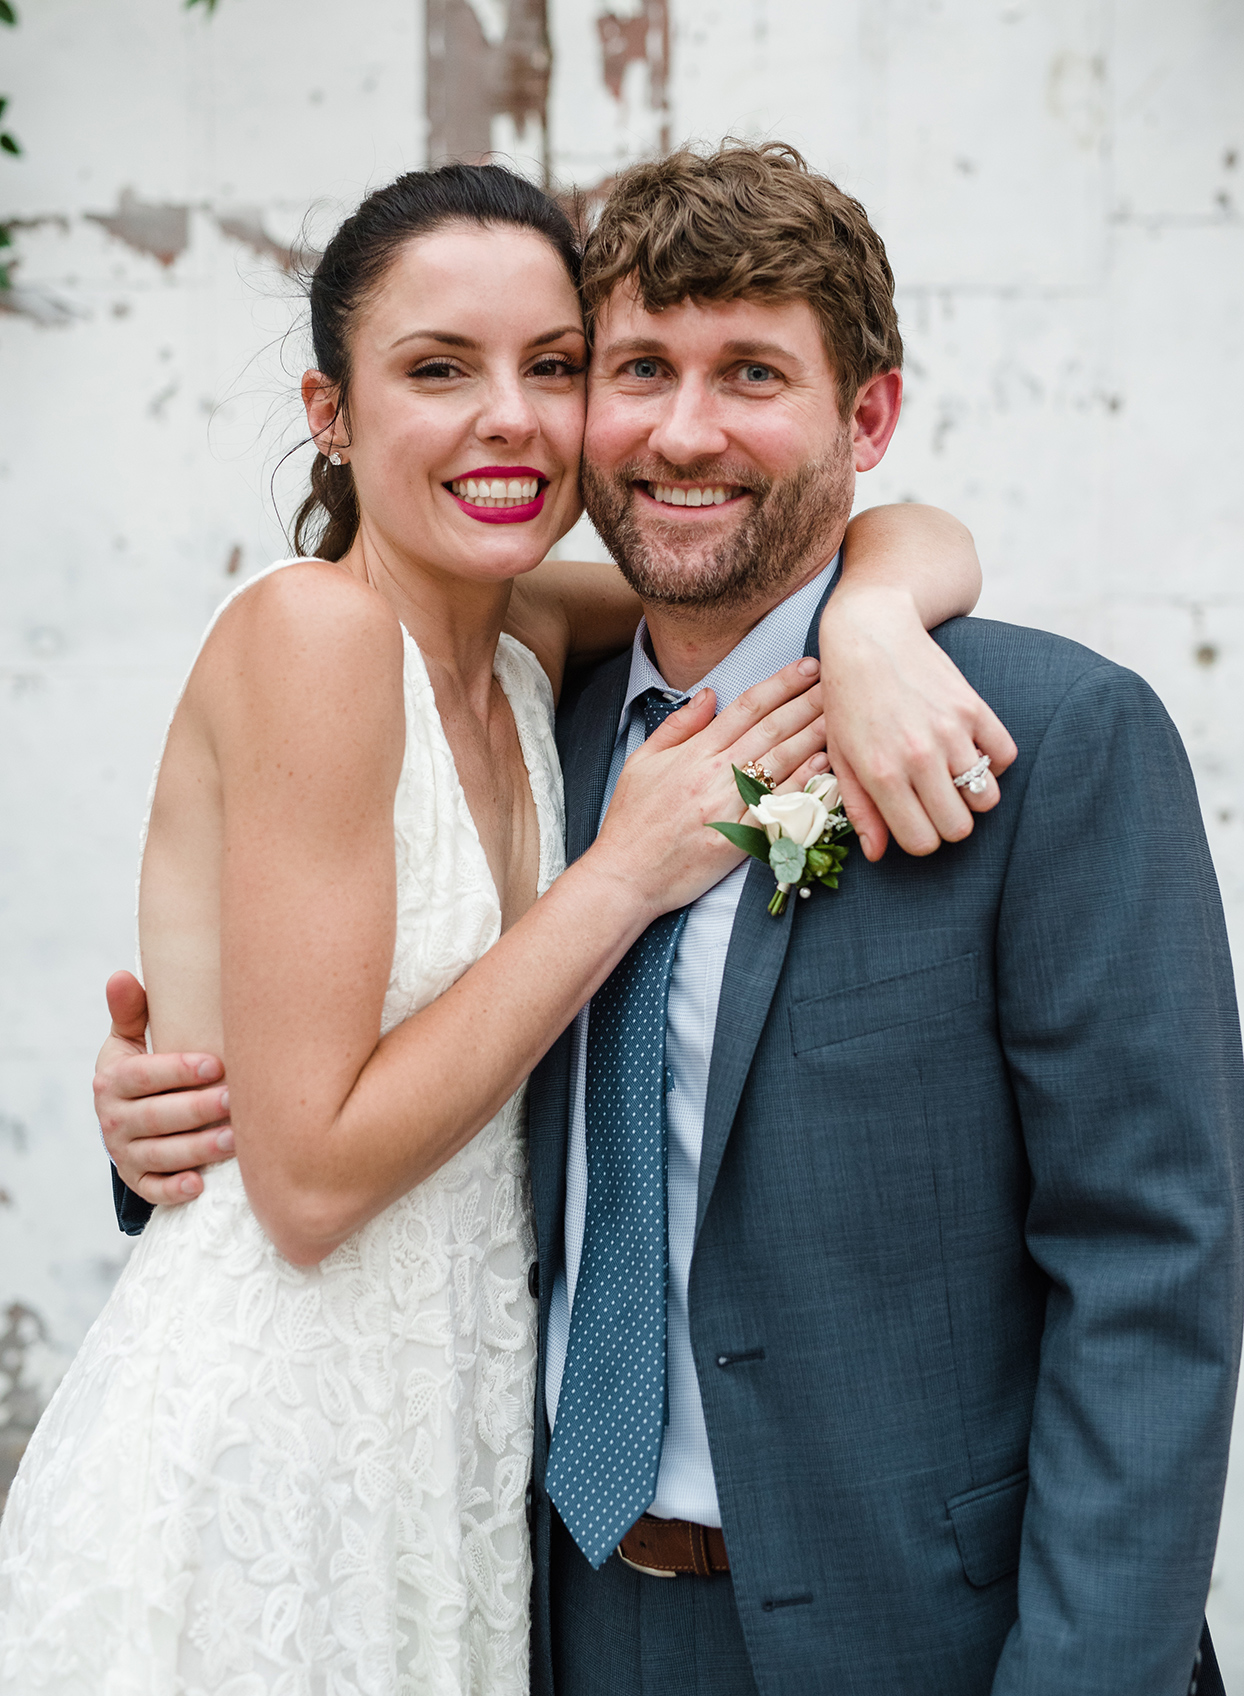 Wedding couple hugging in front of warehouse